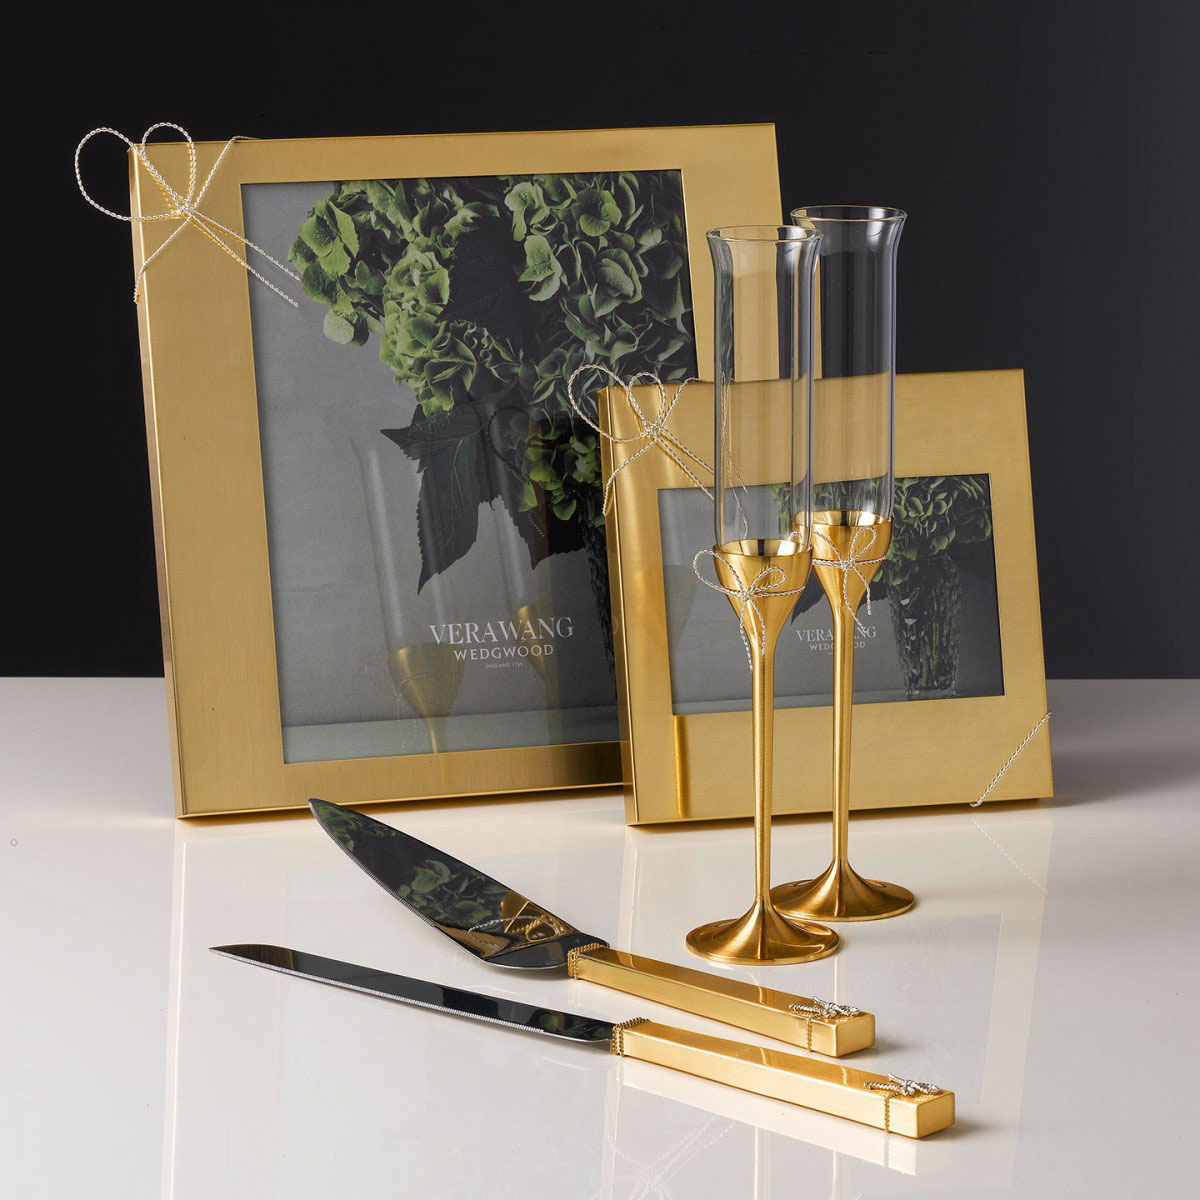 Vera Wang Wedgwood Love Knots Gold Cake Knife and Server Set